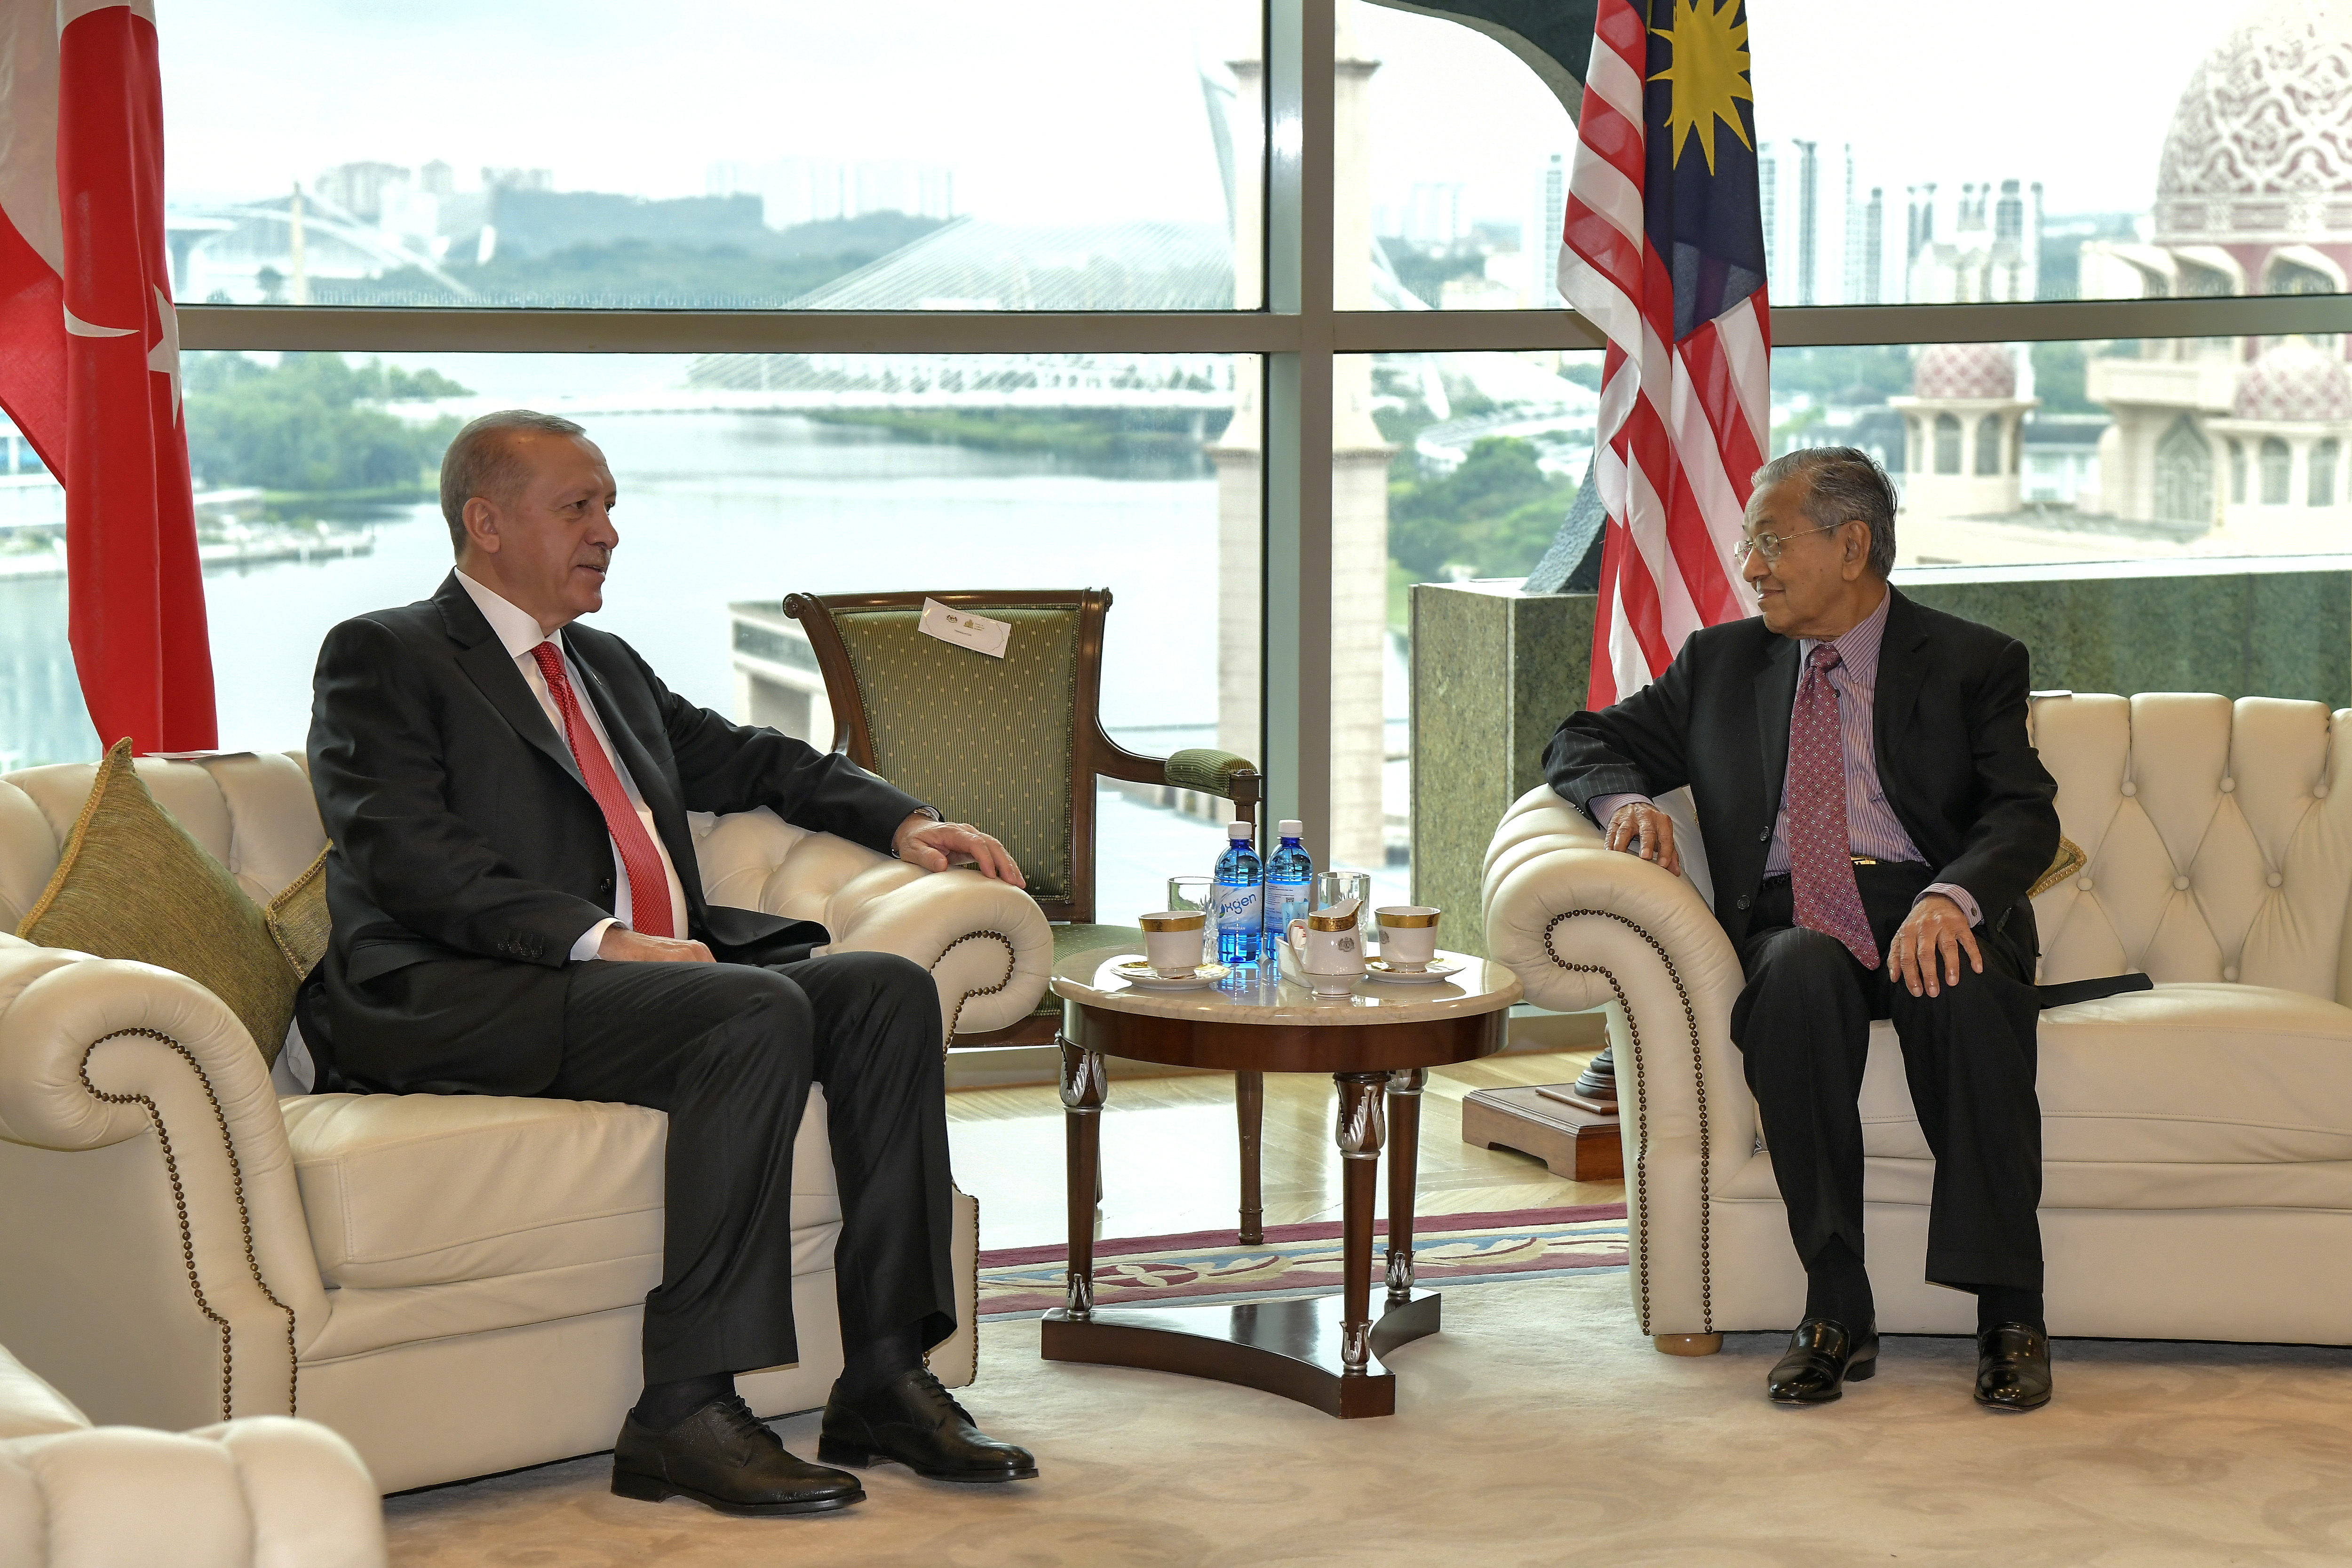 In this photo released by Malaysia's Department of Information, Turkey's President Recep Tayyip Erdogan, left, talks to Malaysia's Prime Minister Mahathir Mohamad during a meeting in Putrajaya, Malaysia, on December 18, 2019.